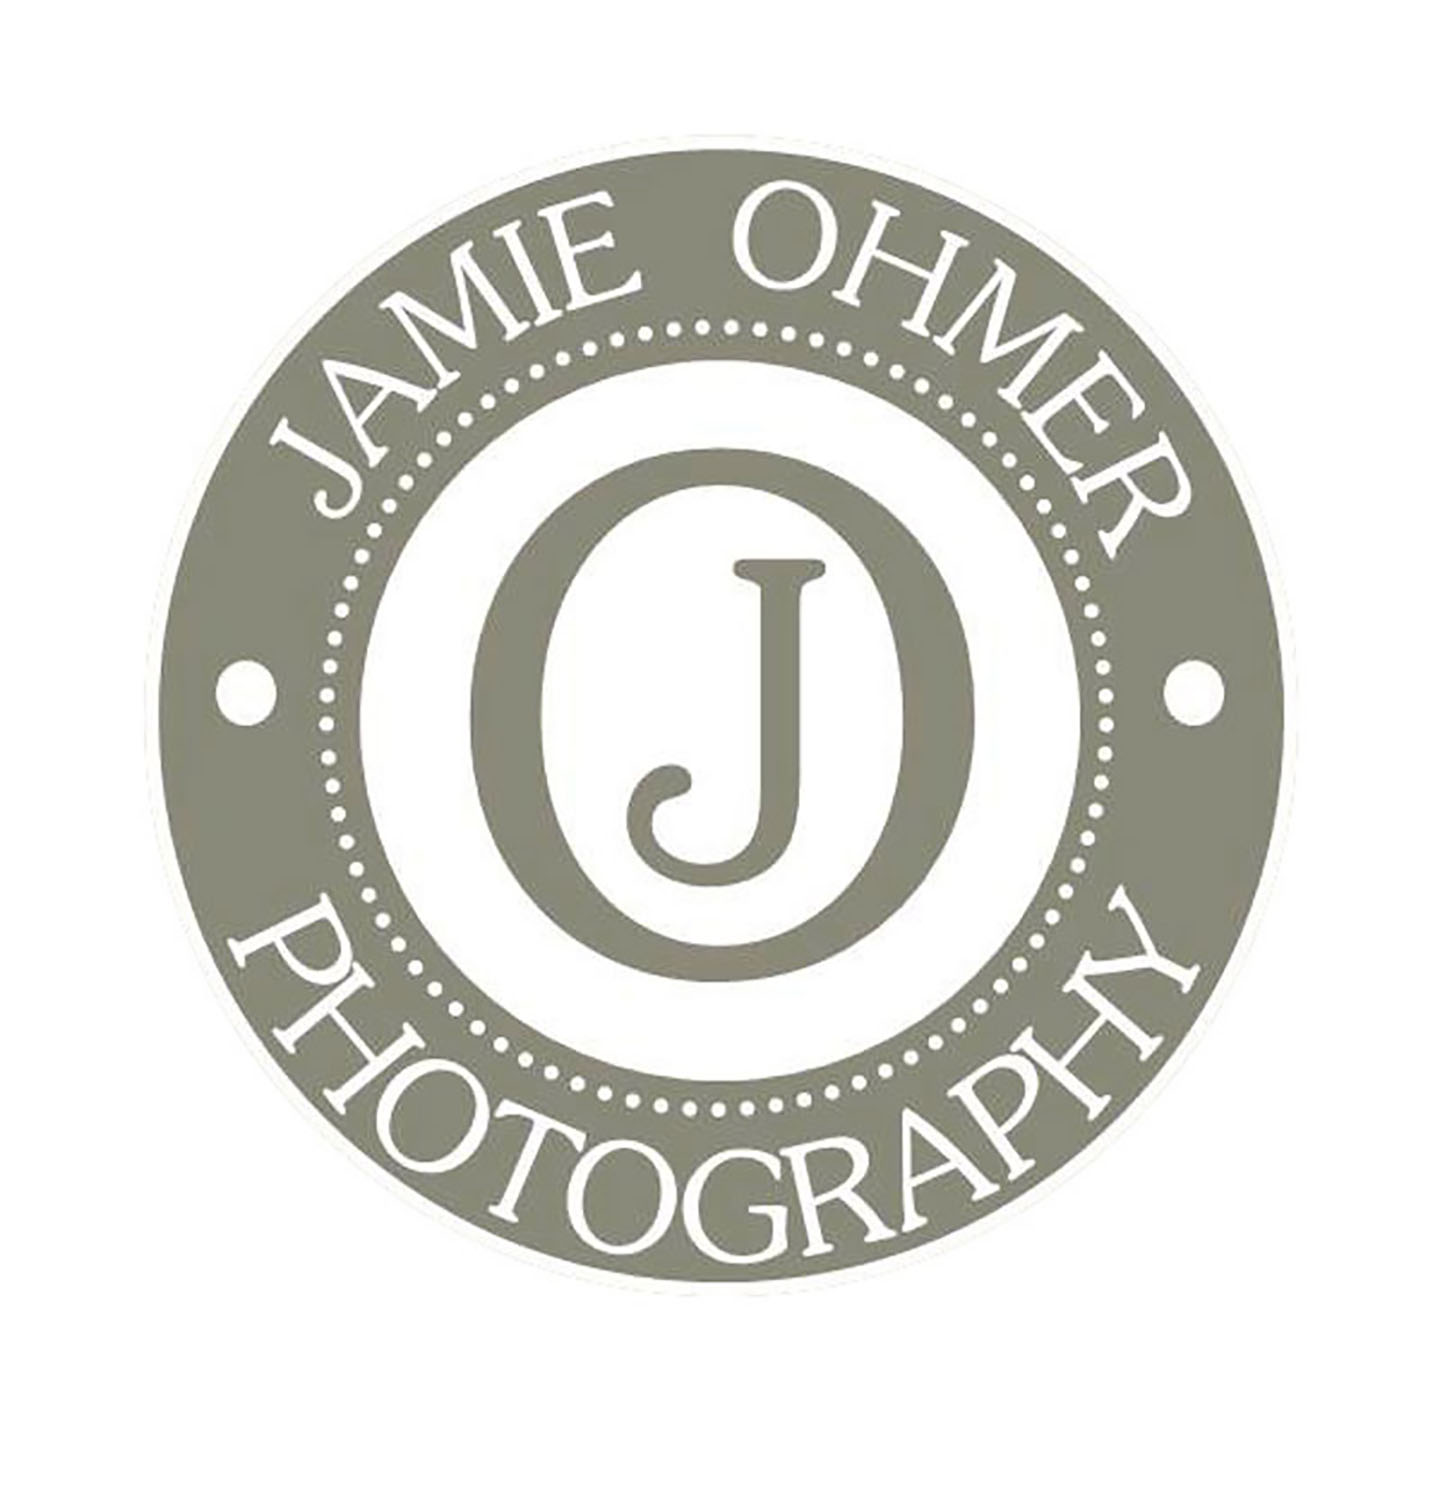 Jamie Ohmer Photography, LLC